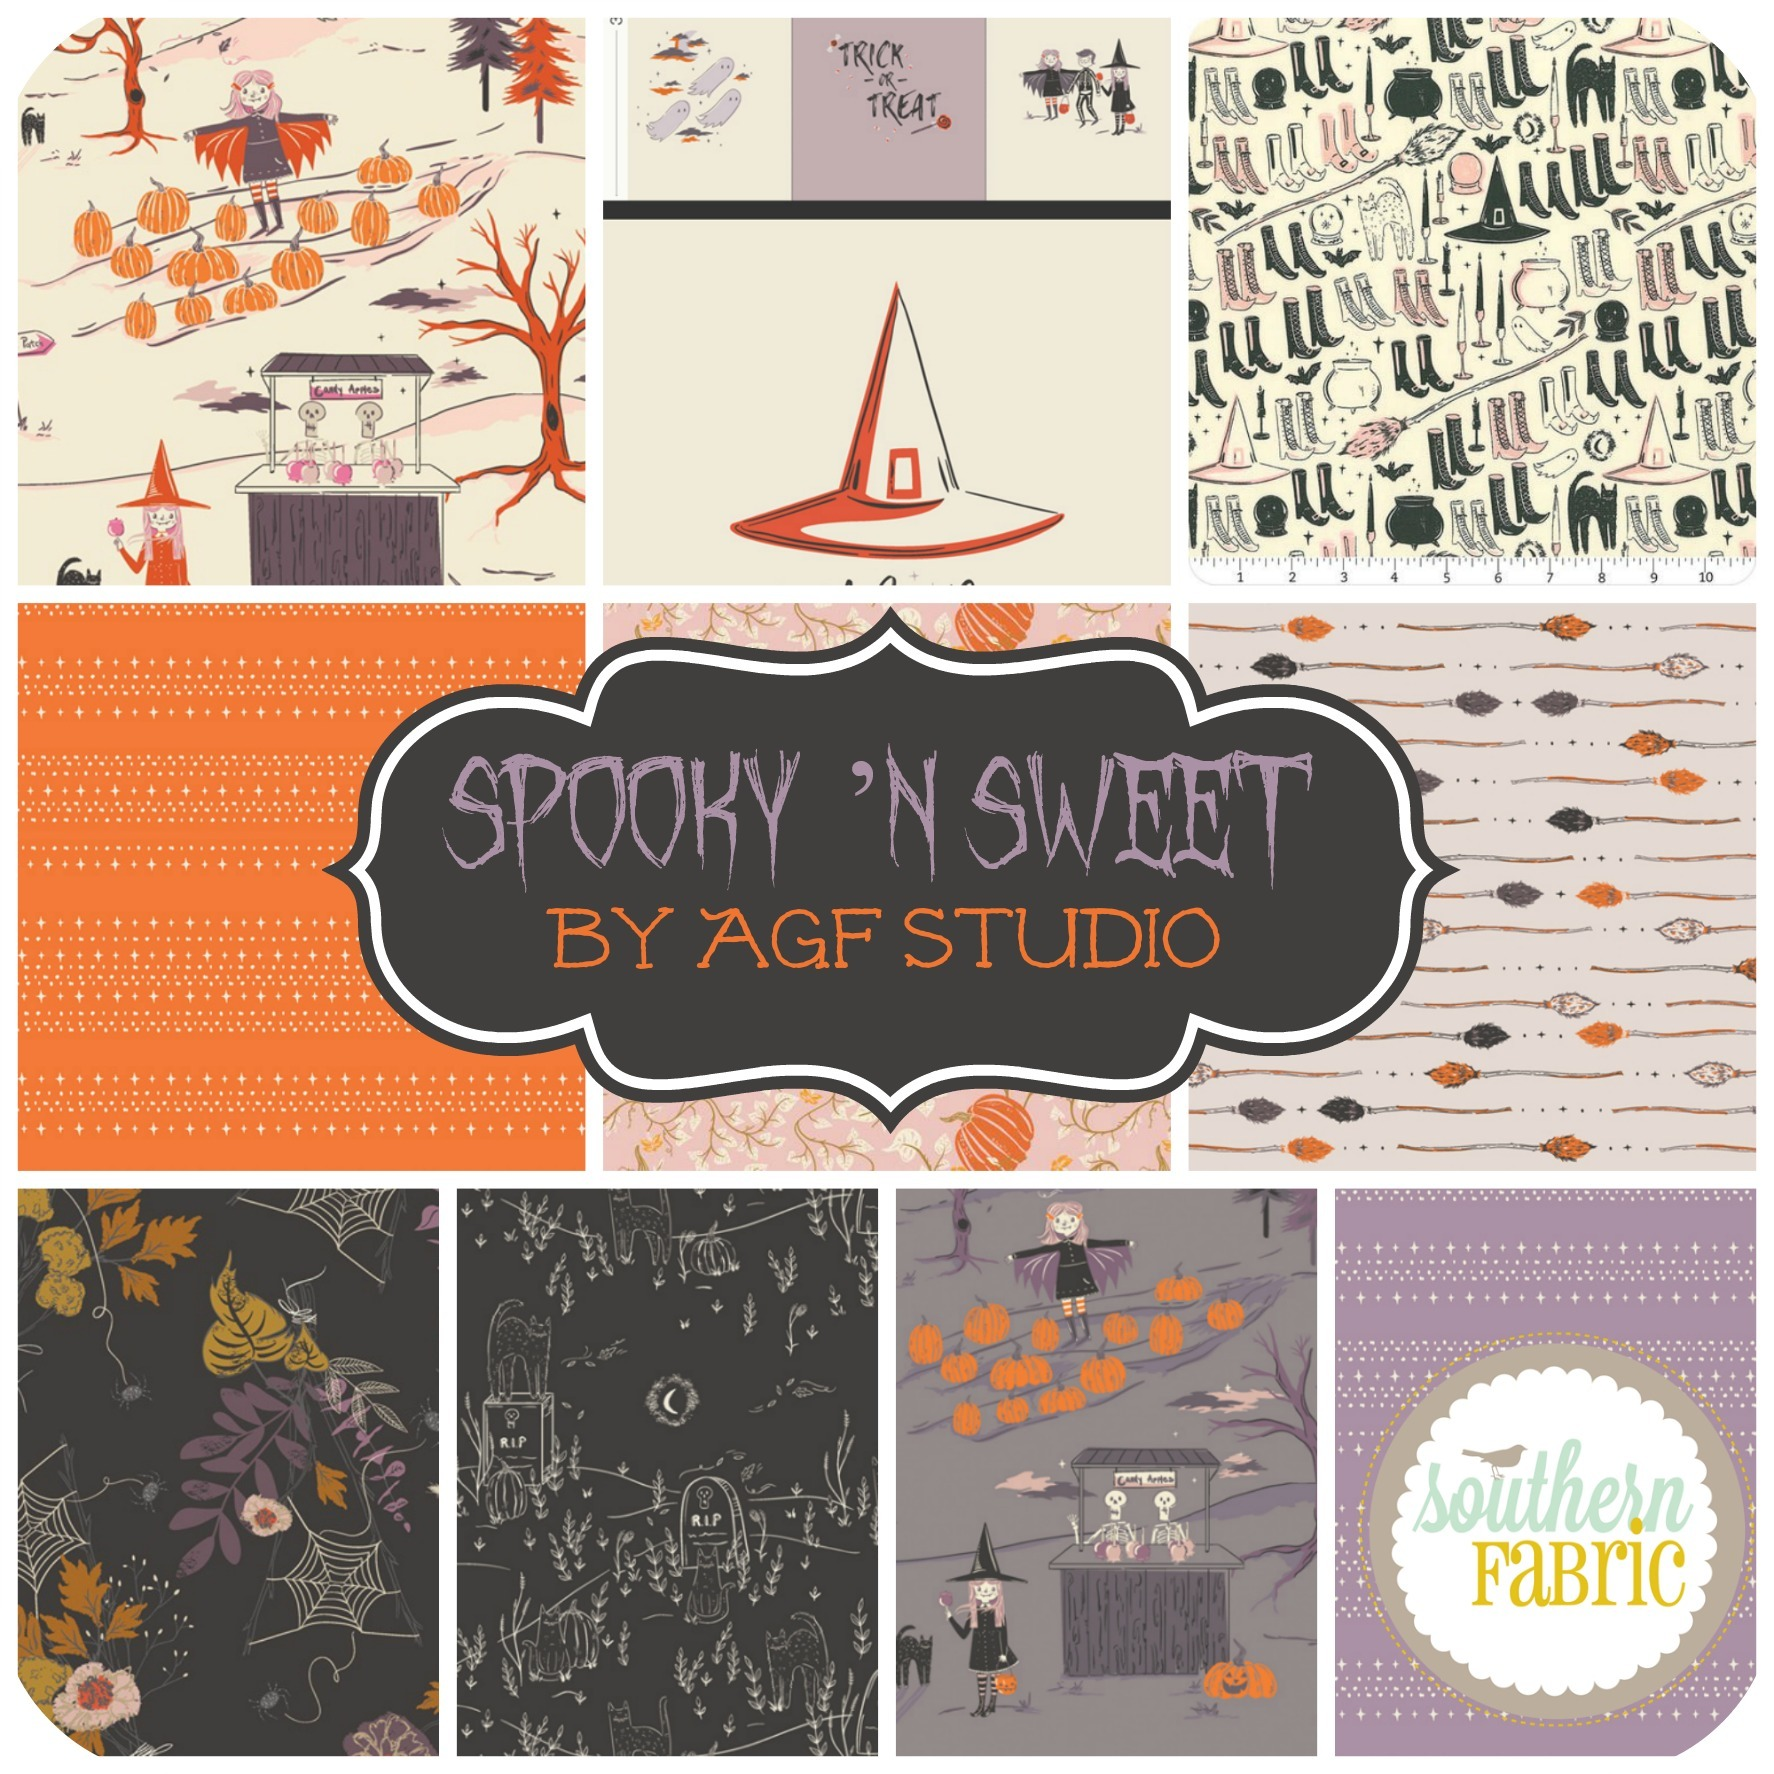 Spooky 'n Sweet by AGF Studio